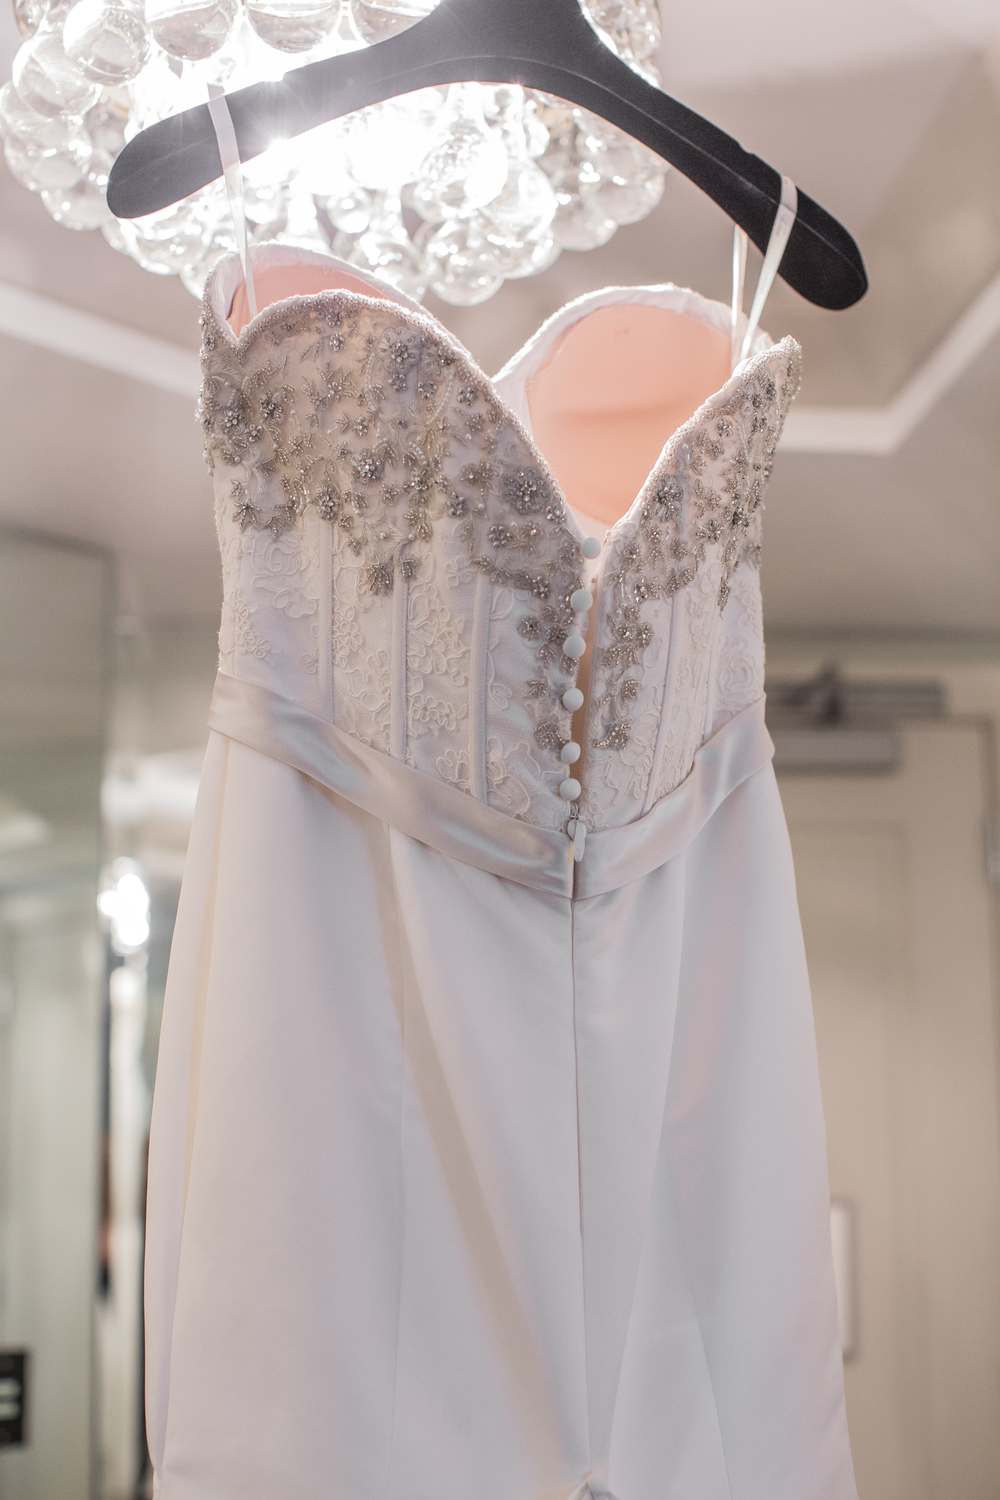 The bride's Victor Harper dress hung in their suite at the Cosmopolitan. Las Vegas Wedding at Siena Golf Club  |  Photography by Ella Gagiano  |  Las Wedding Planner Andrea Eppolito